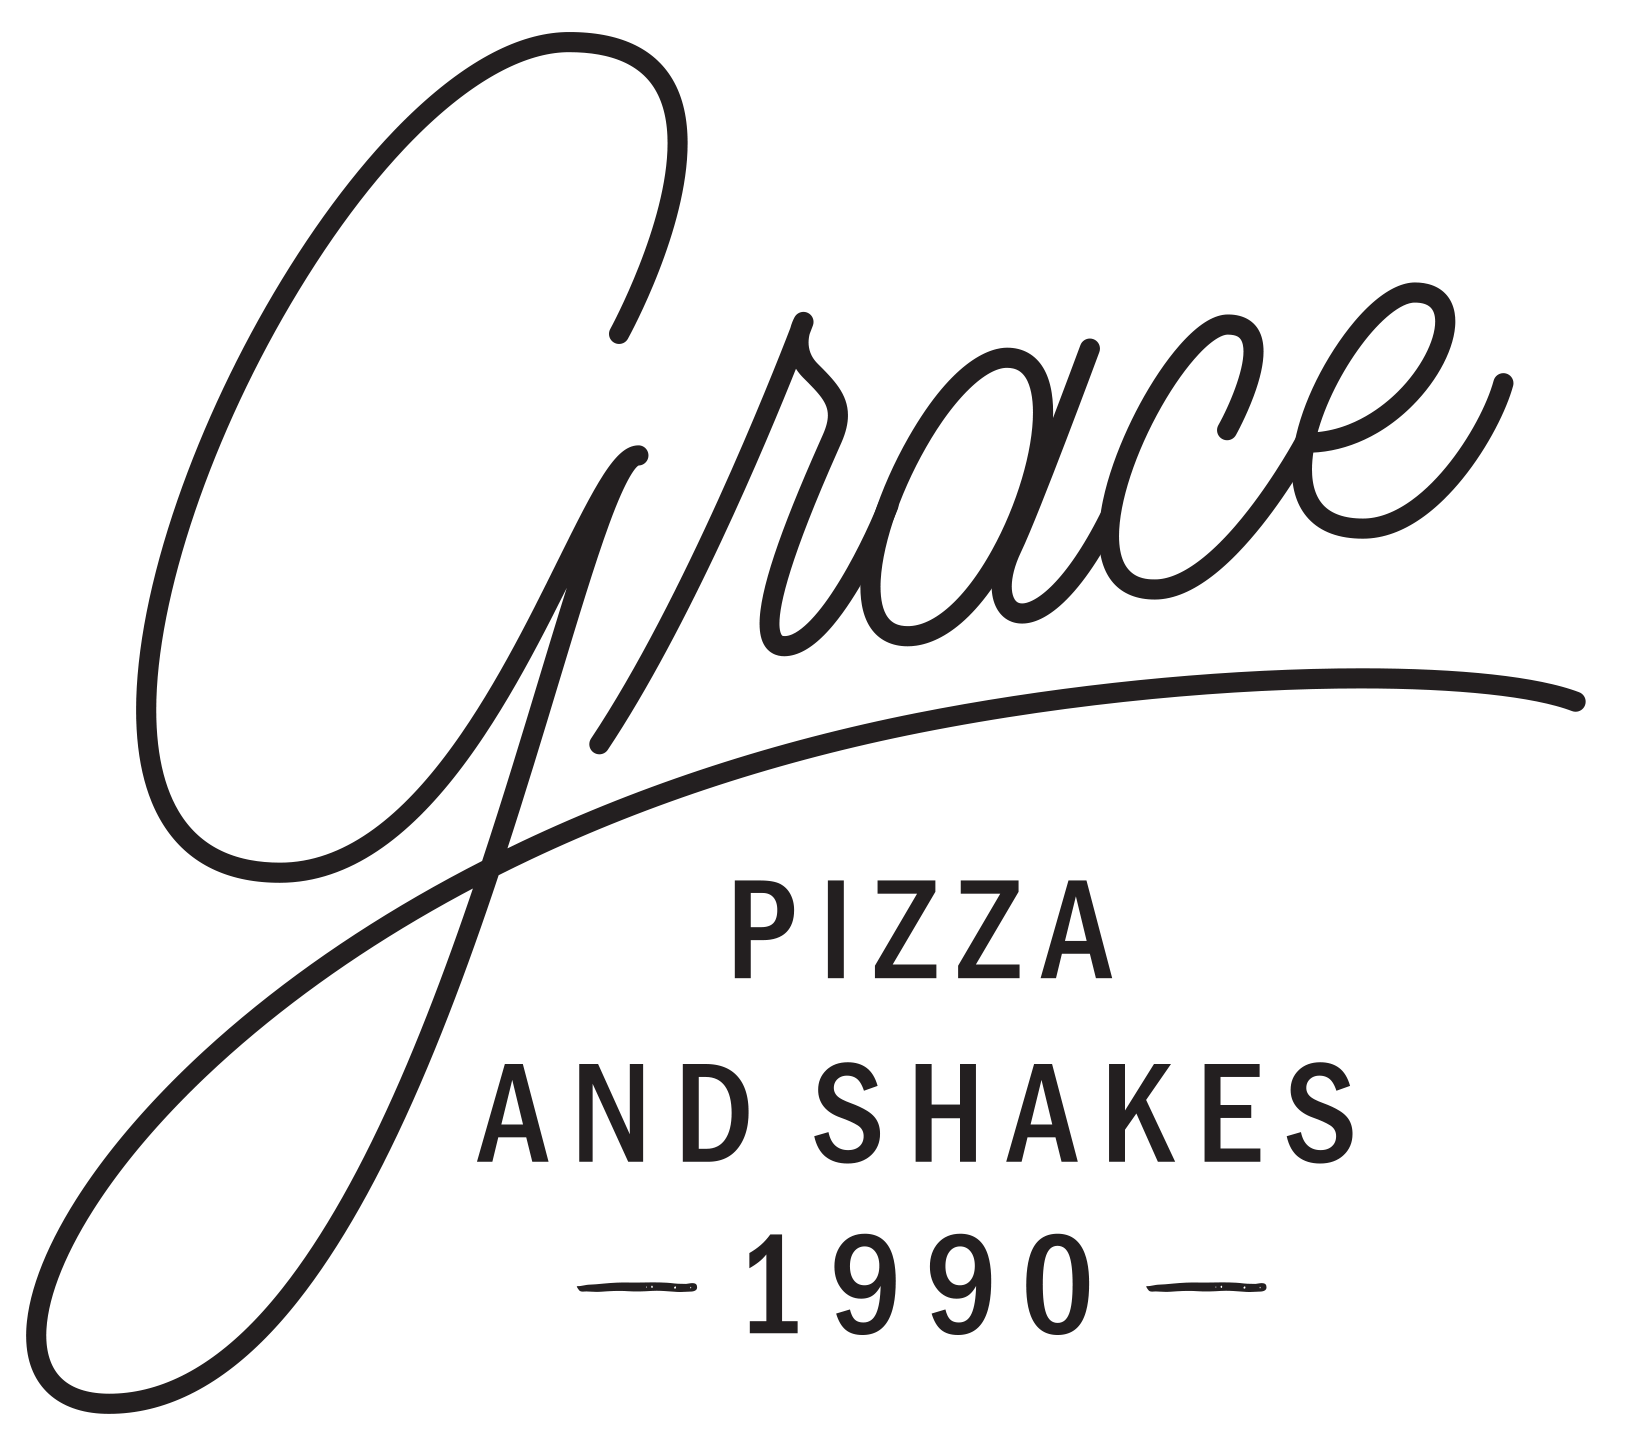 Grace Pizza and Shakes